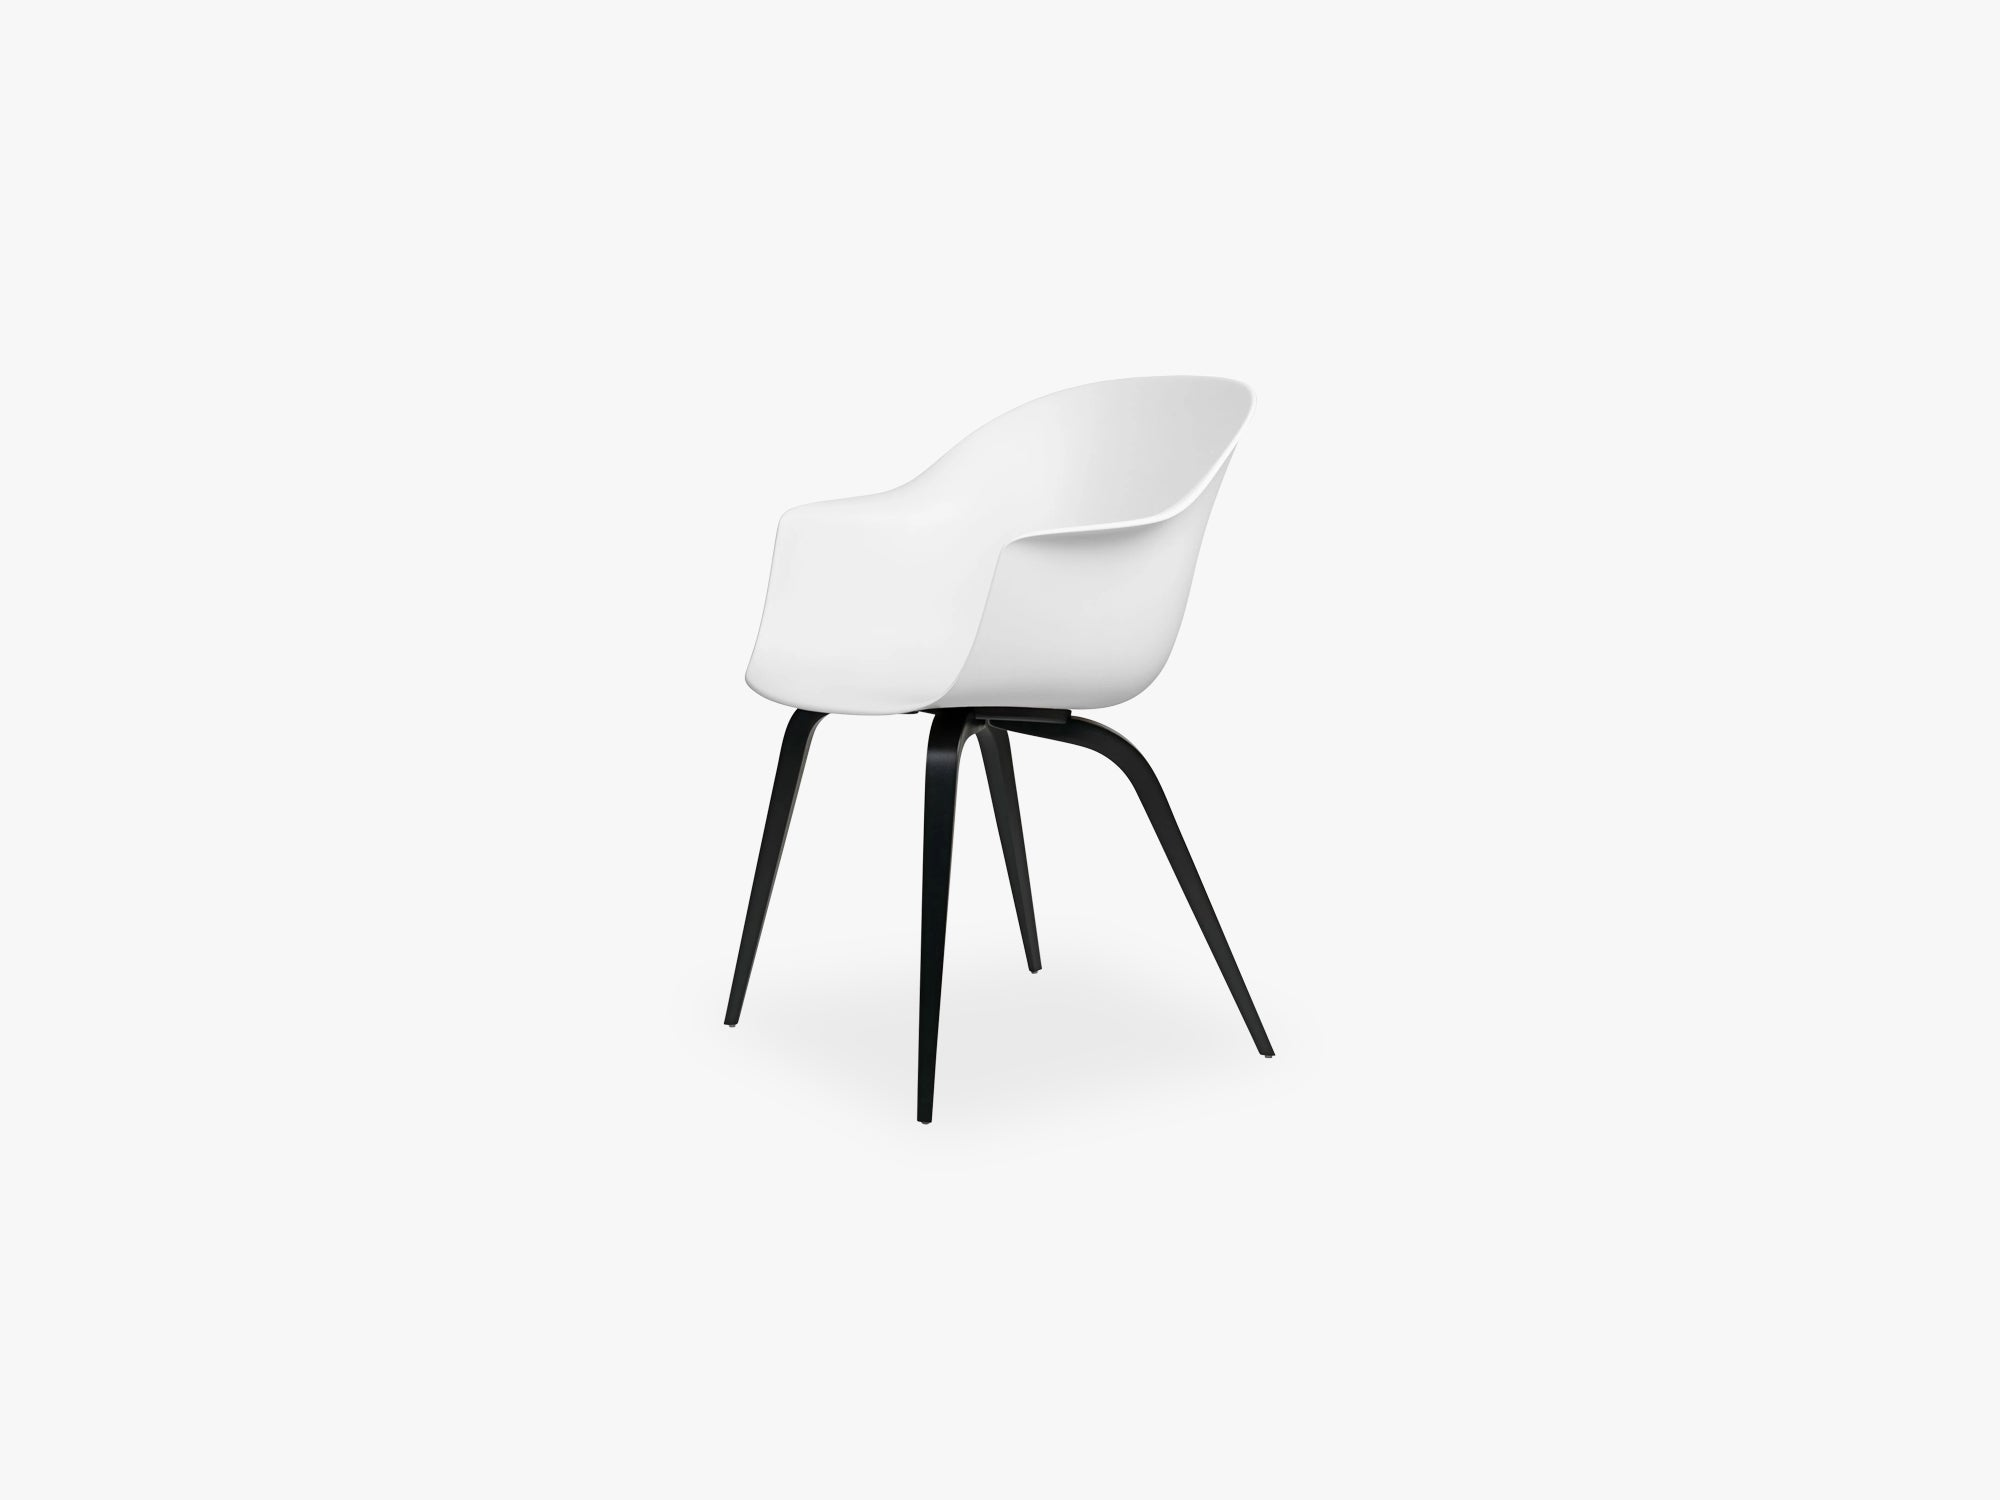 Bat Dining Chair - Skal m Wood base - Black Stained Beech Semi Matt, Pure White fra GUBI